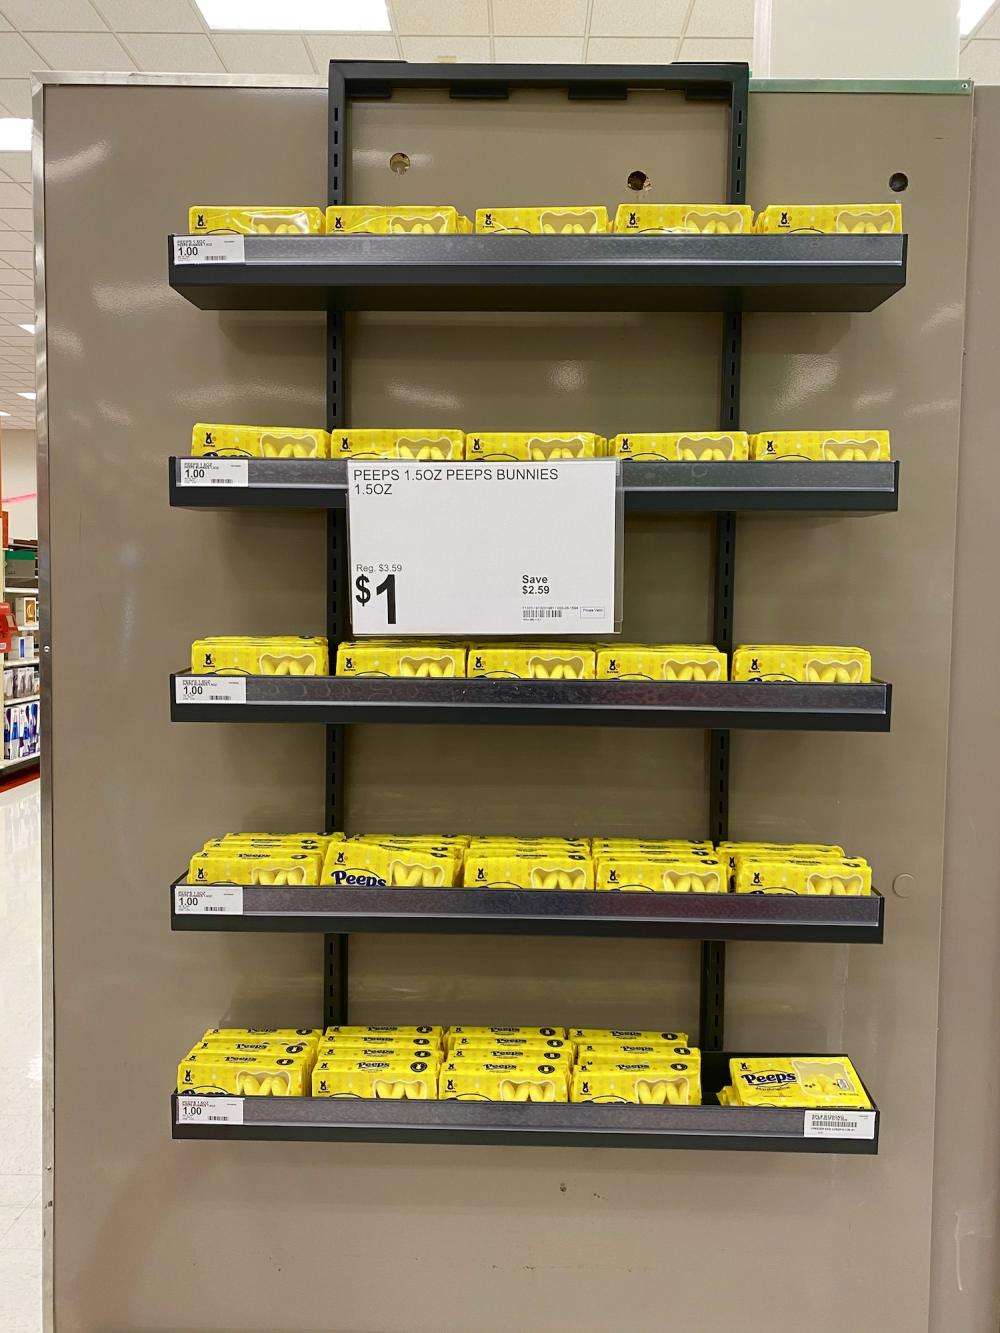 The saddest Peeps display